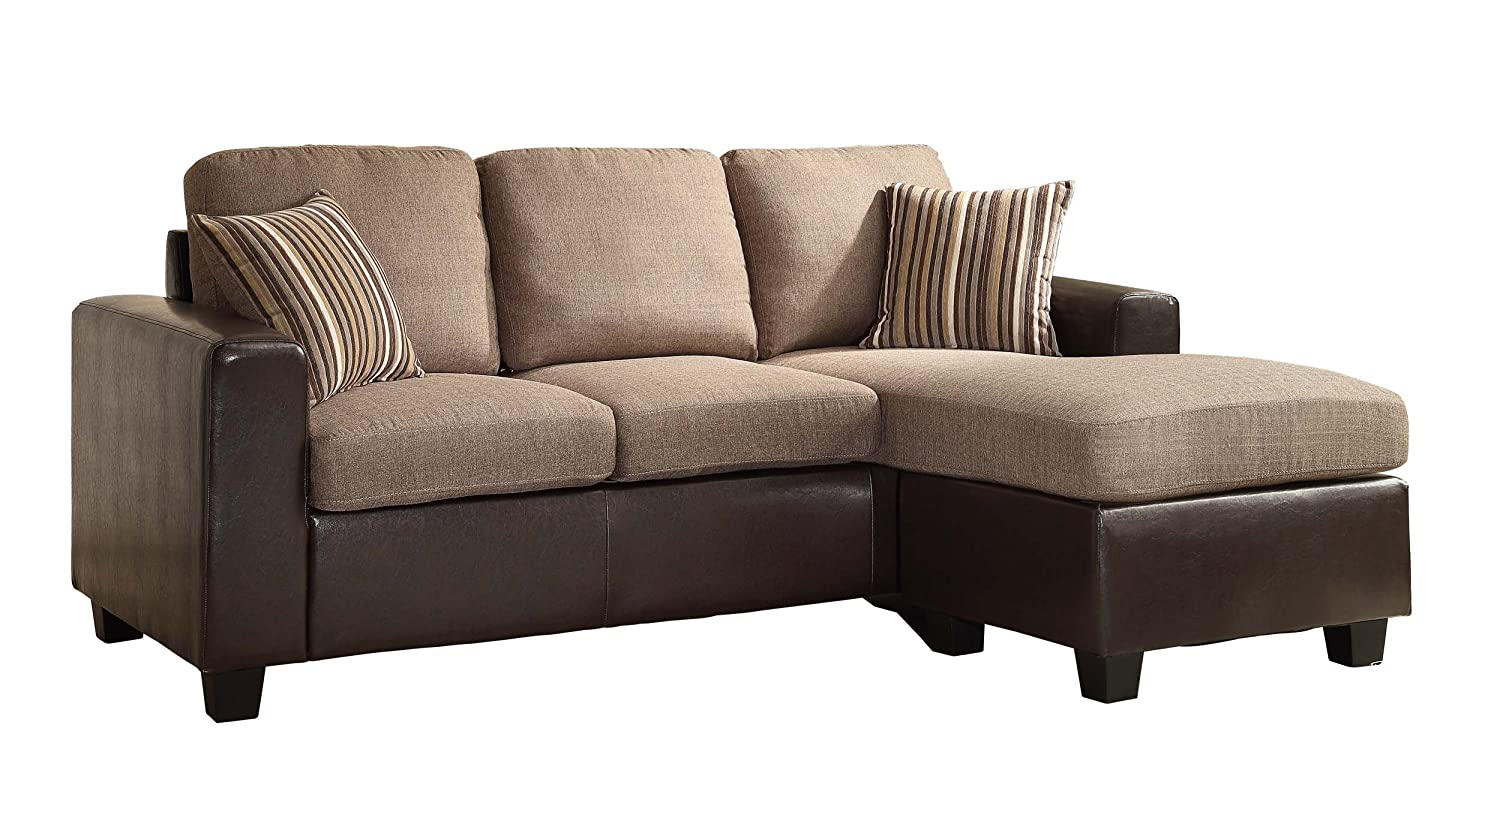 Homelegance 8401-3SC Reversible Sofa Chaise with 2 Pillows - Brown Linen-Like Fabric and Bi-Cast Vinyl